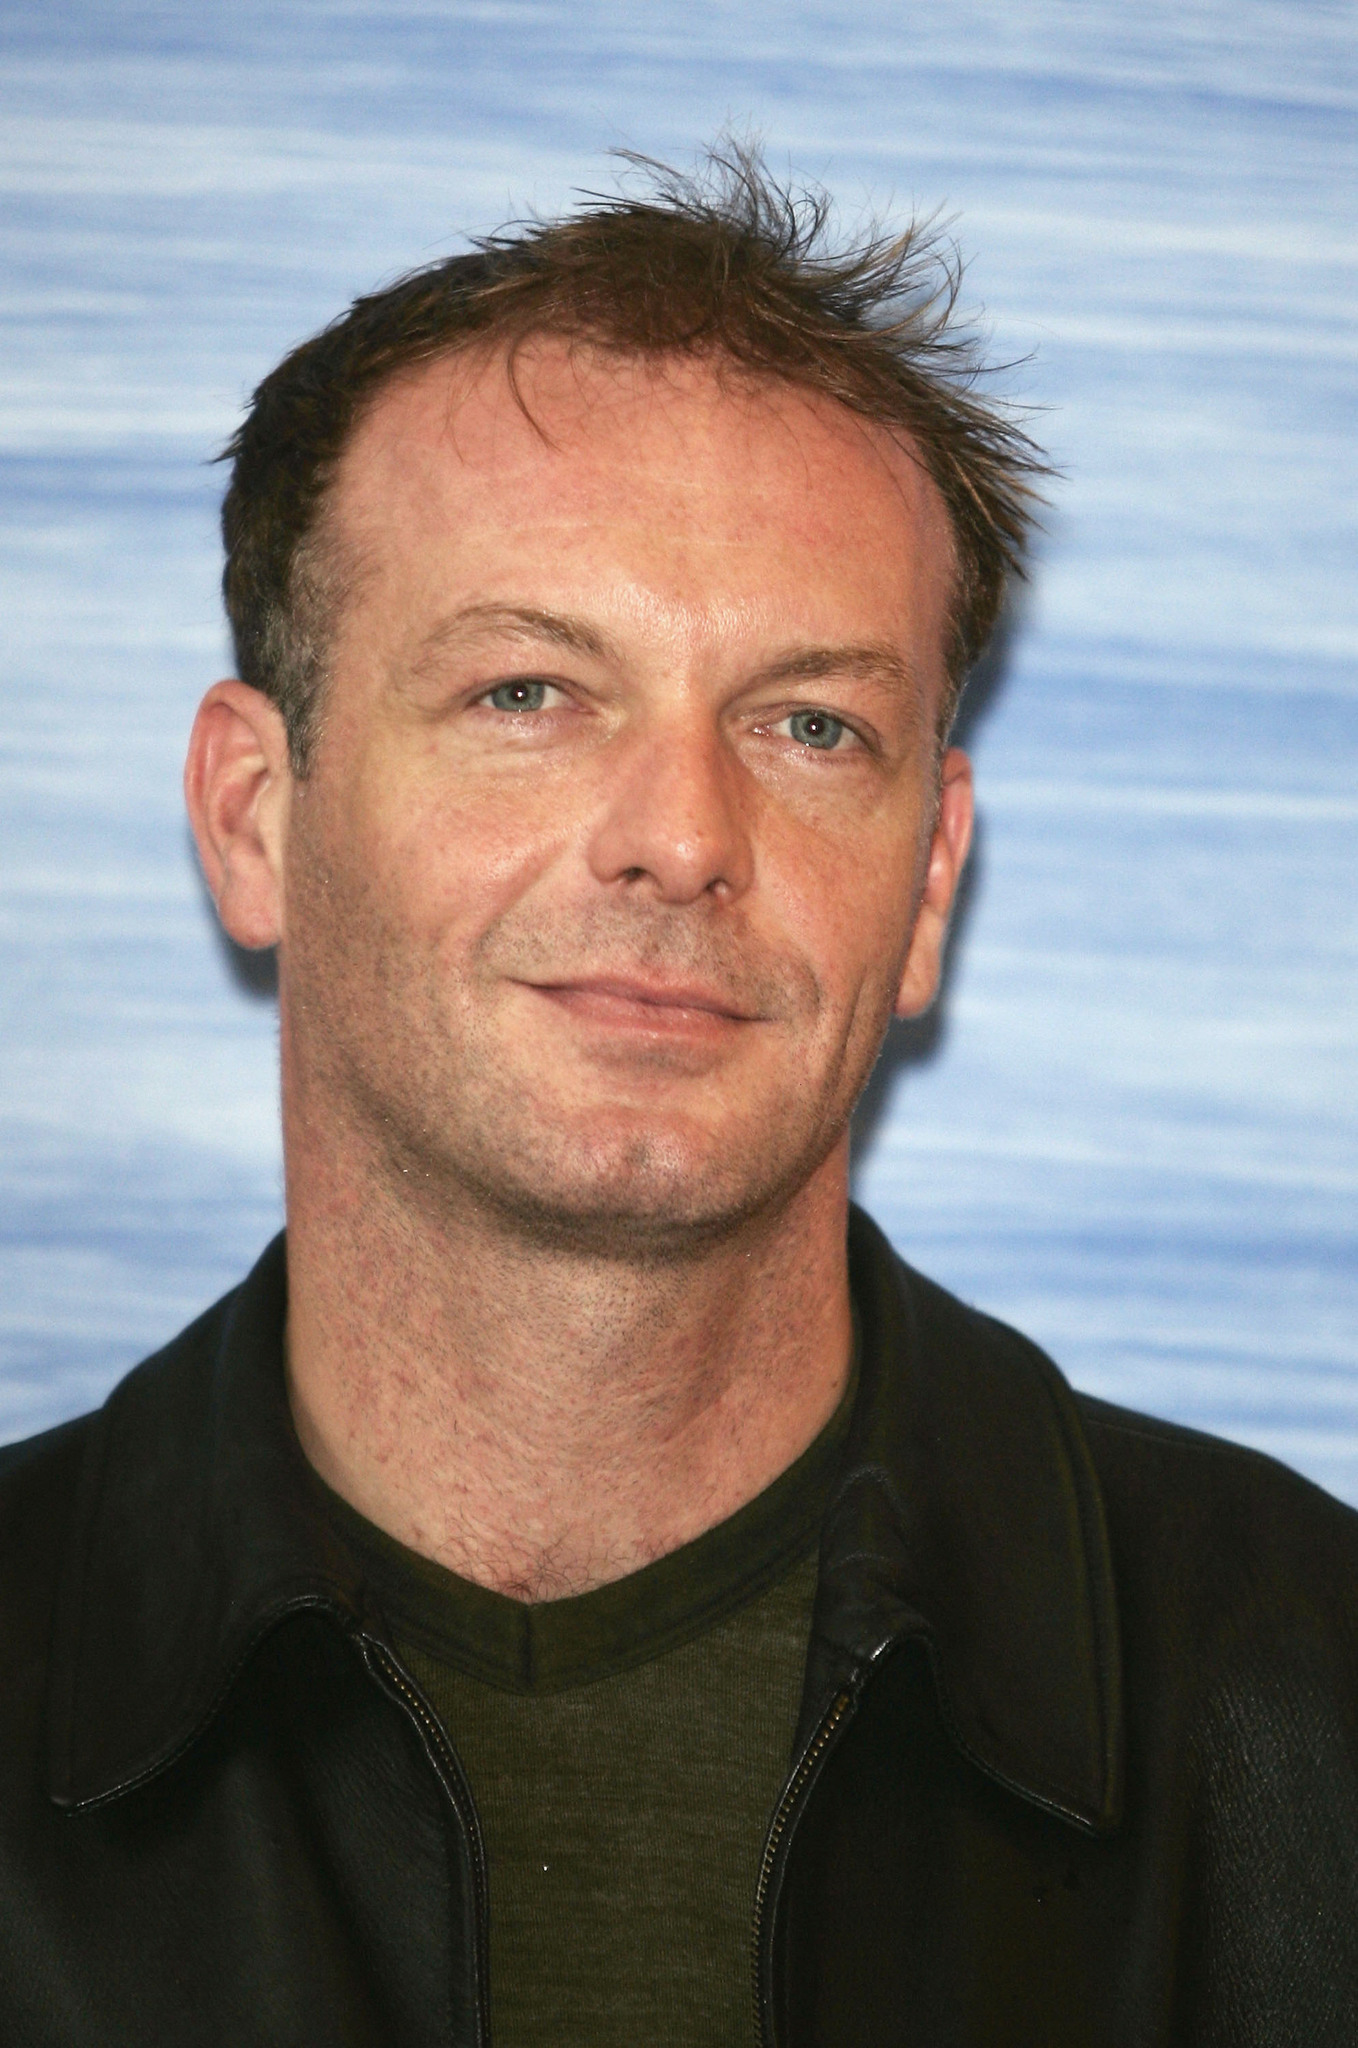 Hugo Speer (born 1969)